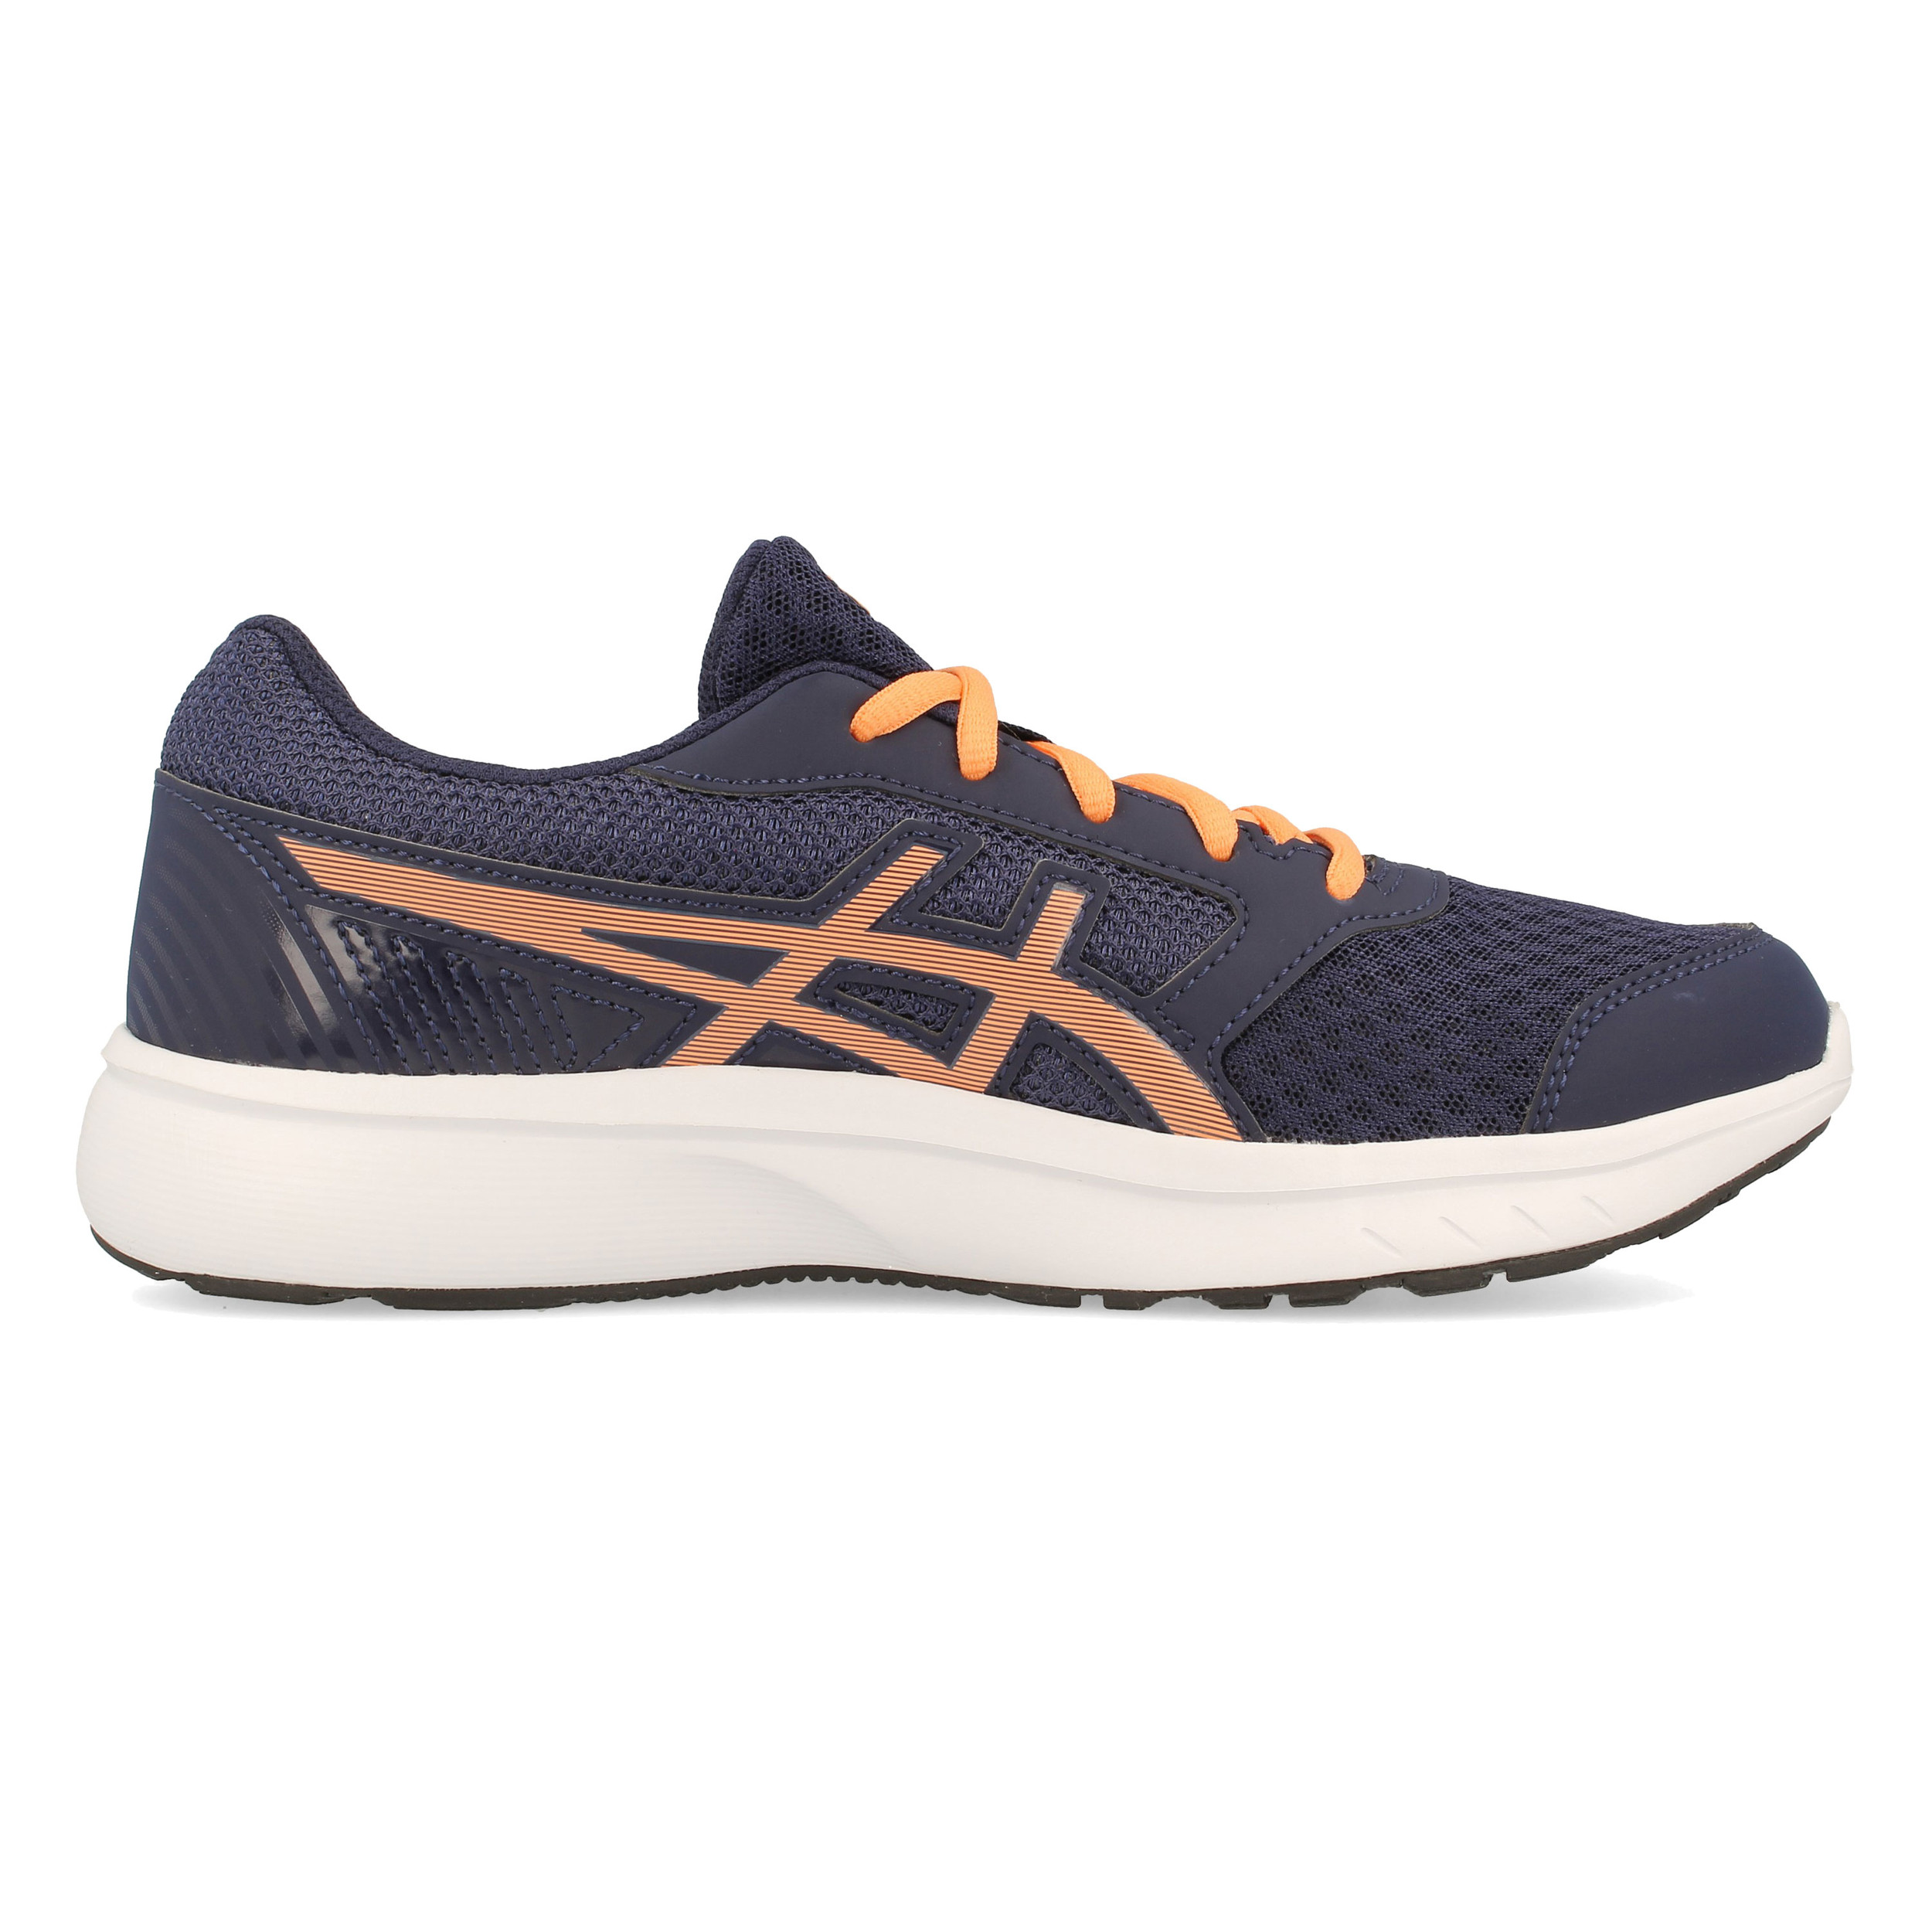 hot sales b9e16 92c91 Asics Junior Stormer 2 GS Running Shoes Trainers Sneakers Navy Blue Orange